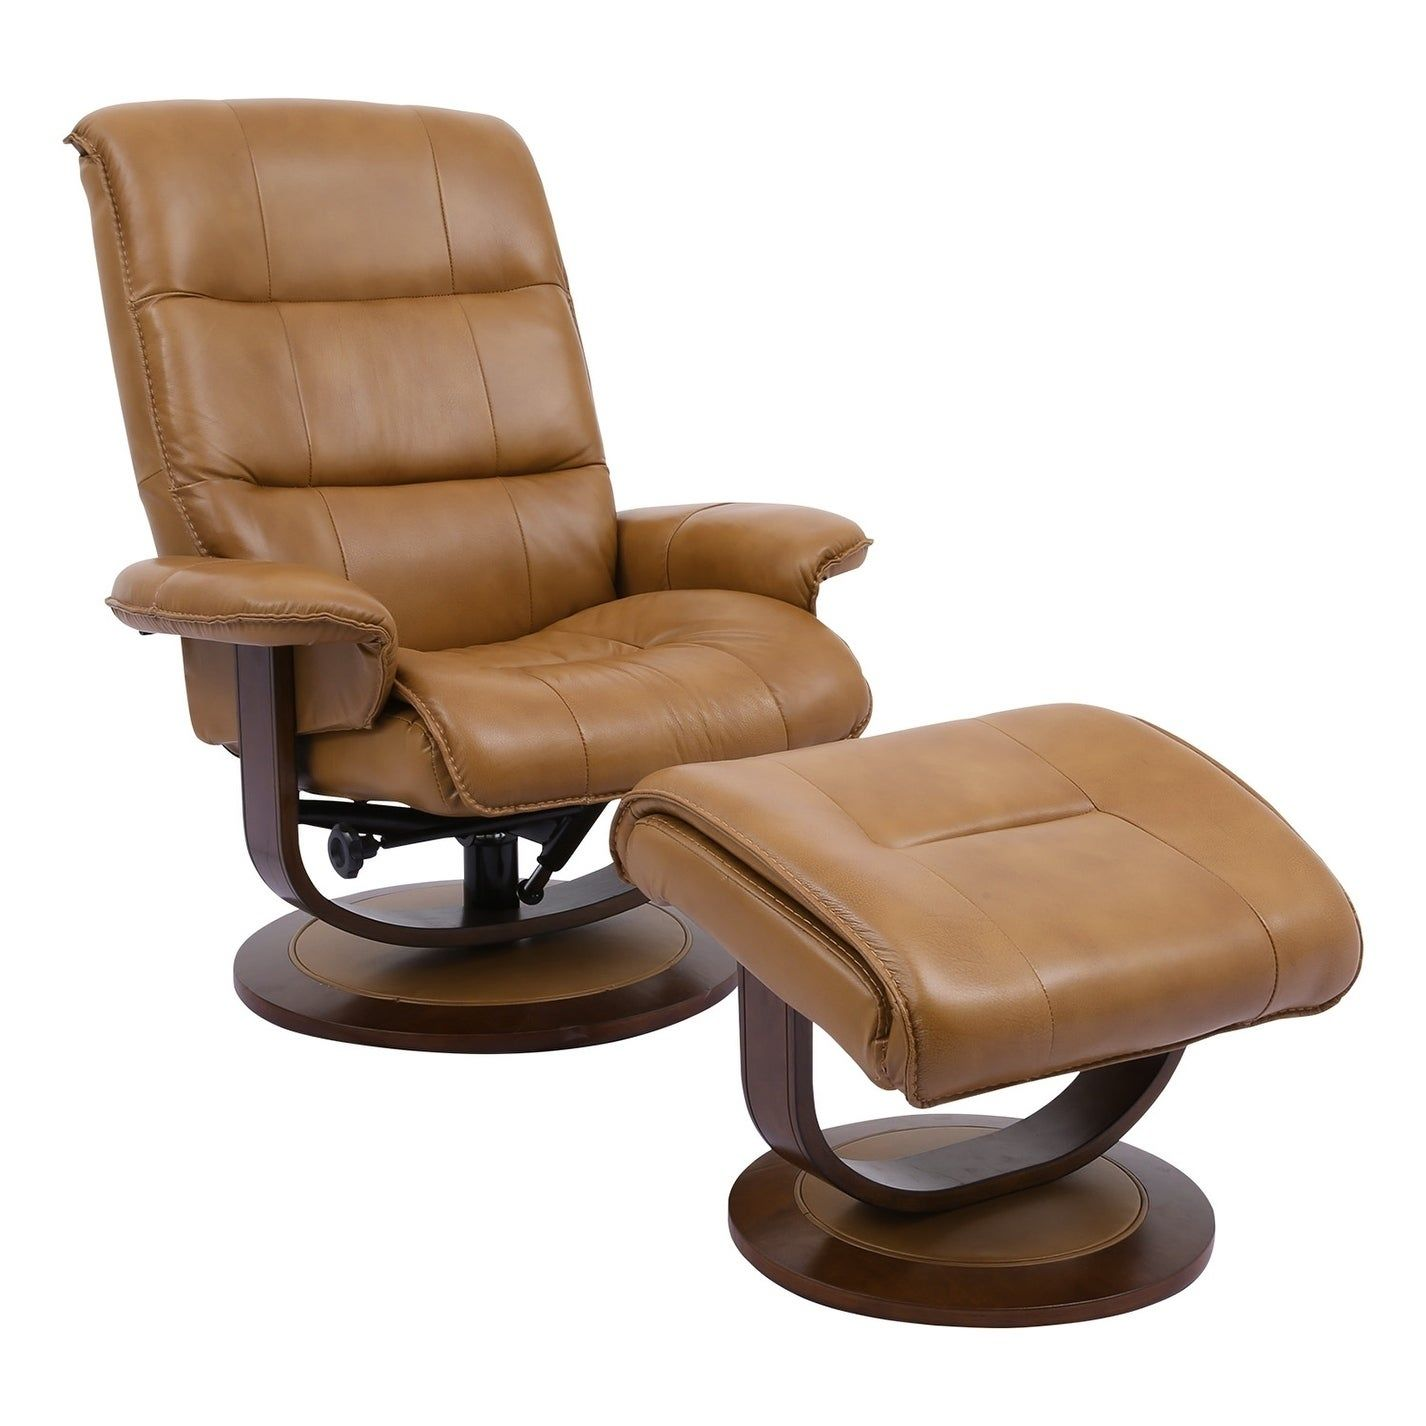 Living Room Chairs In 2021 Recliner With Ottoman Swivel Recliner Leather Recliner